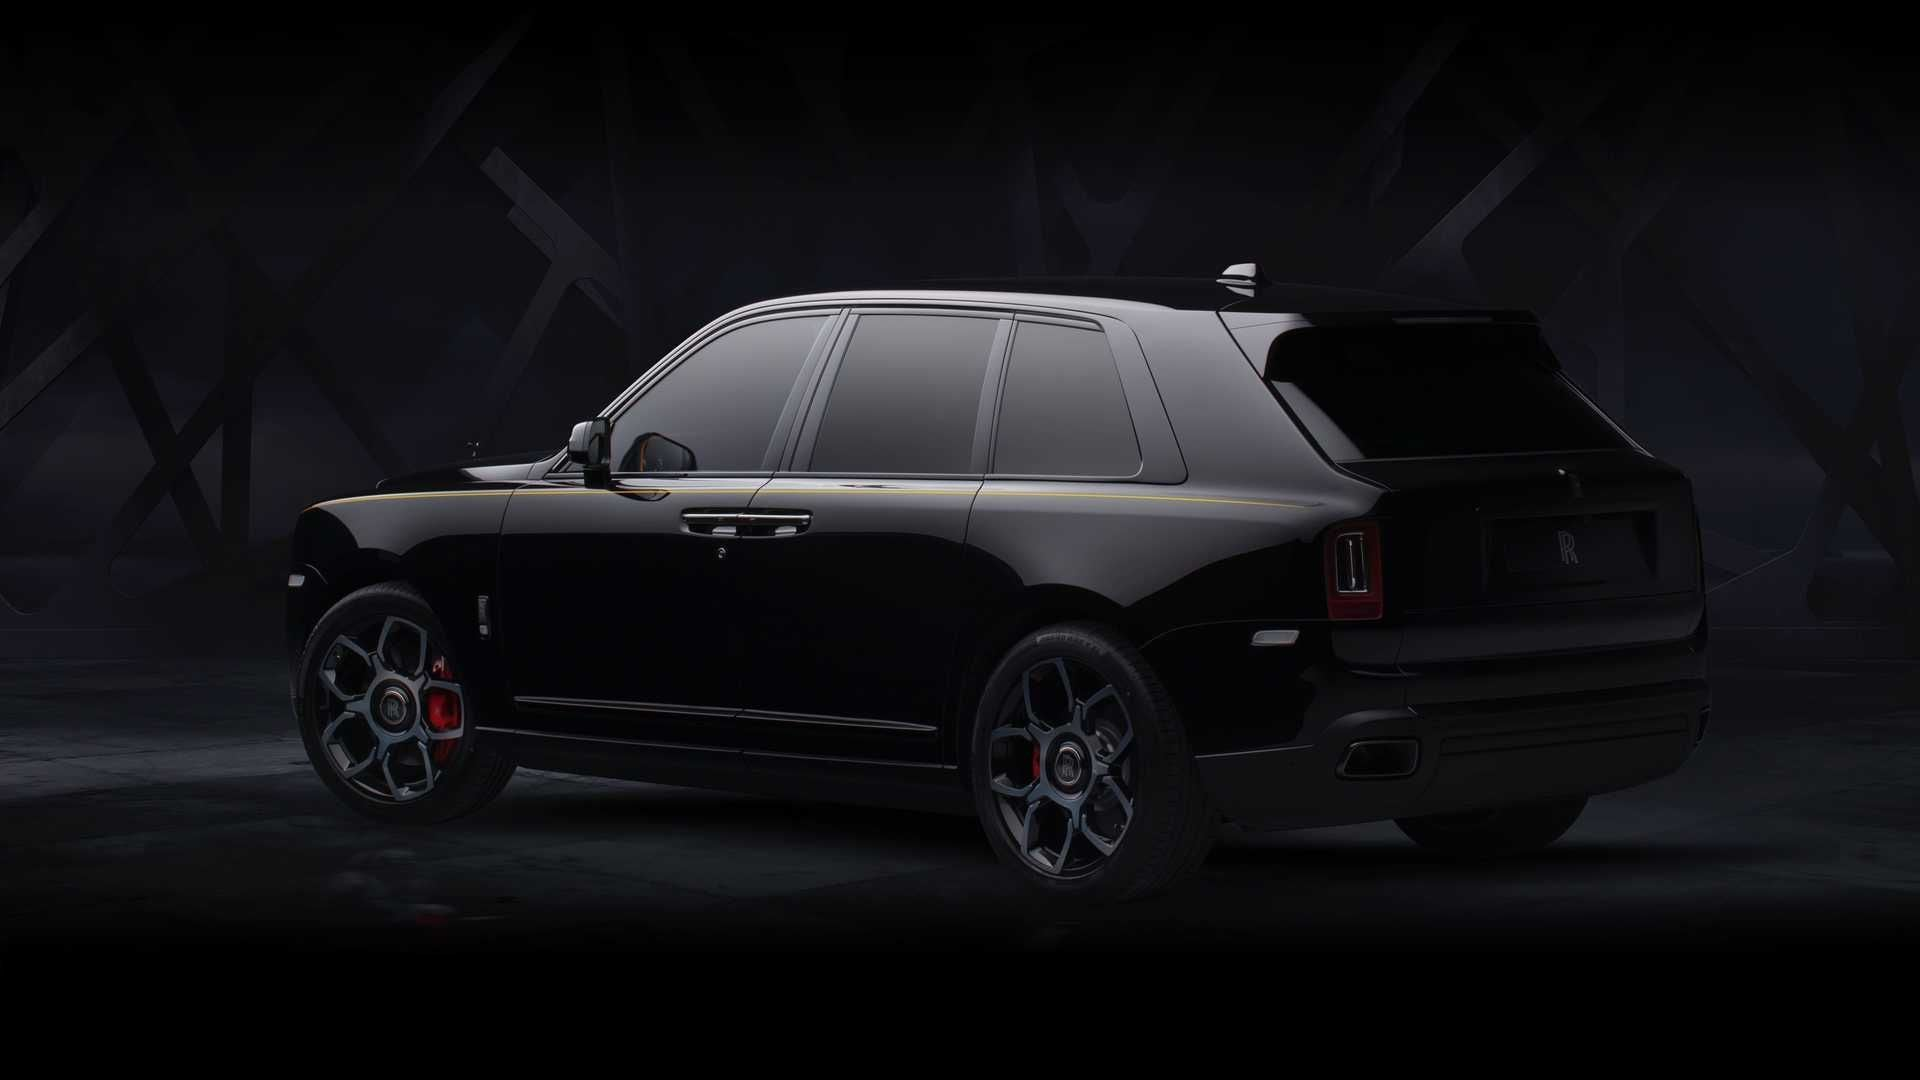 It has now joined Rolls-Royce's Black Badge line-up that included Wraith, Ghost and Dawn.